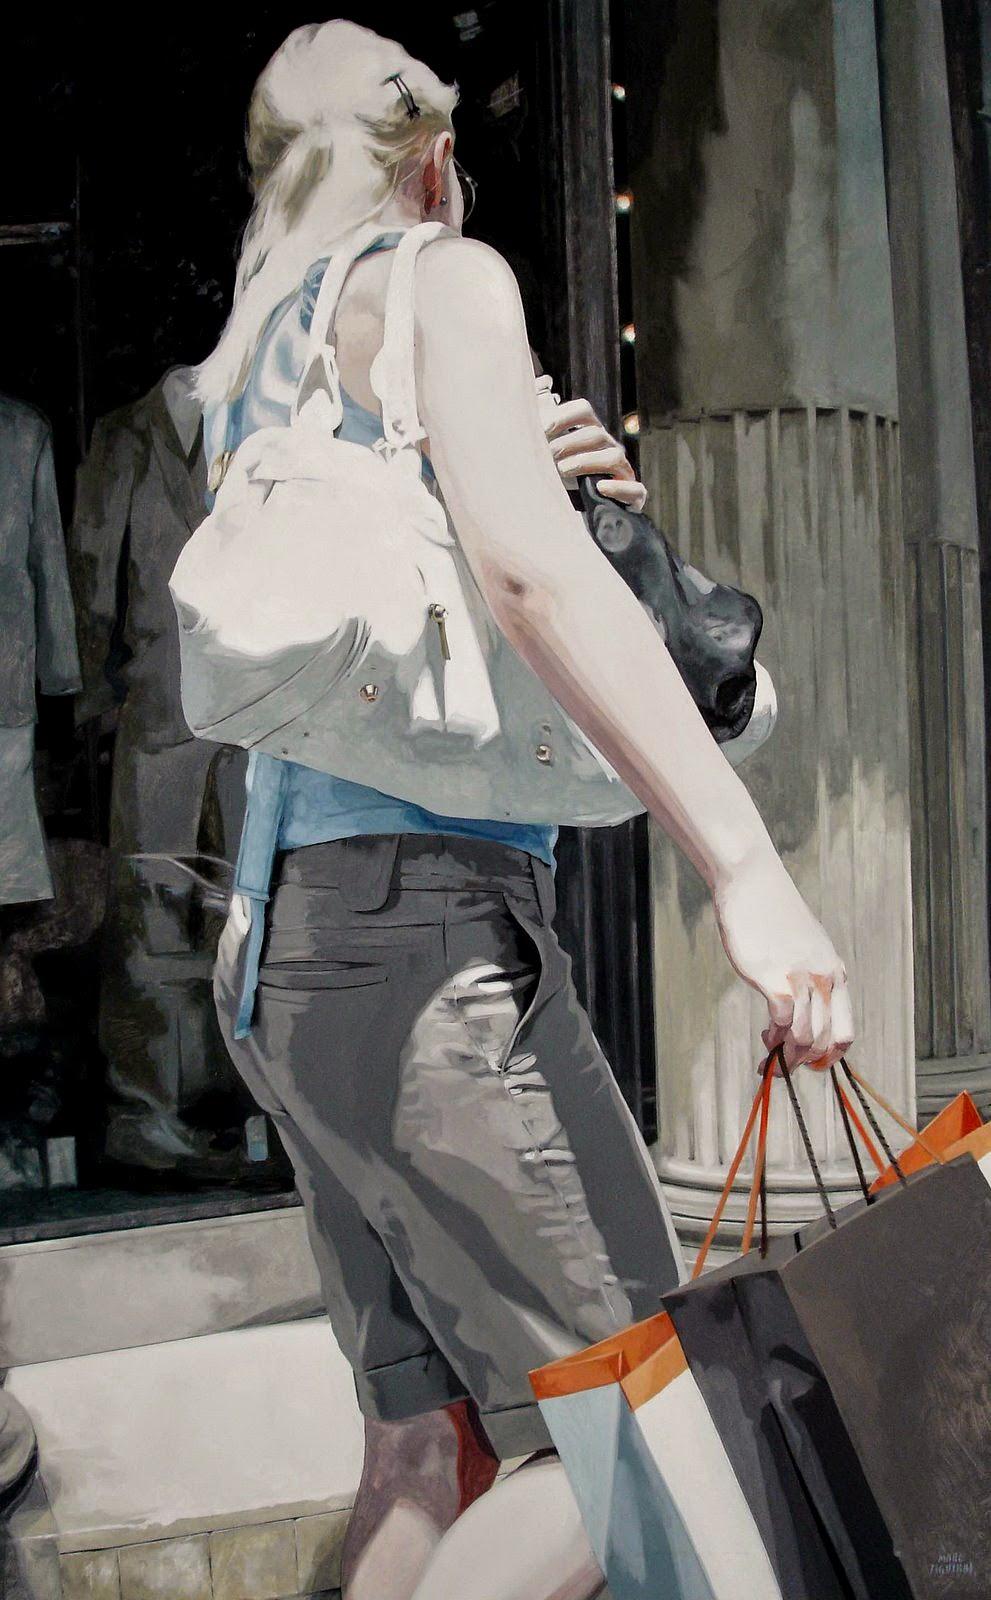 Hyper Realistic Girls Figure Painting By Marc Figueras 37